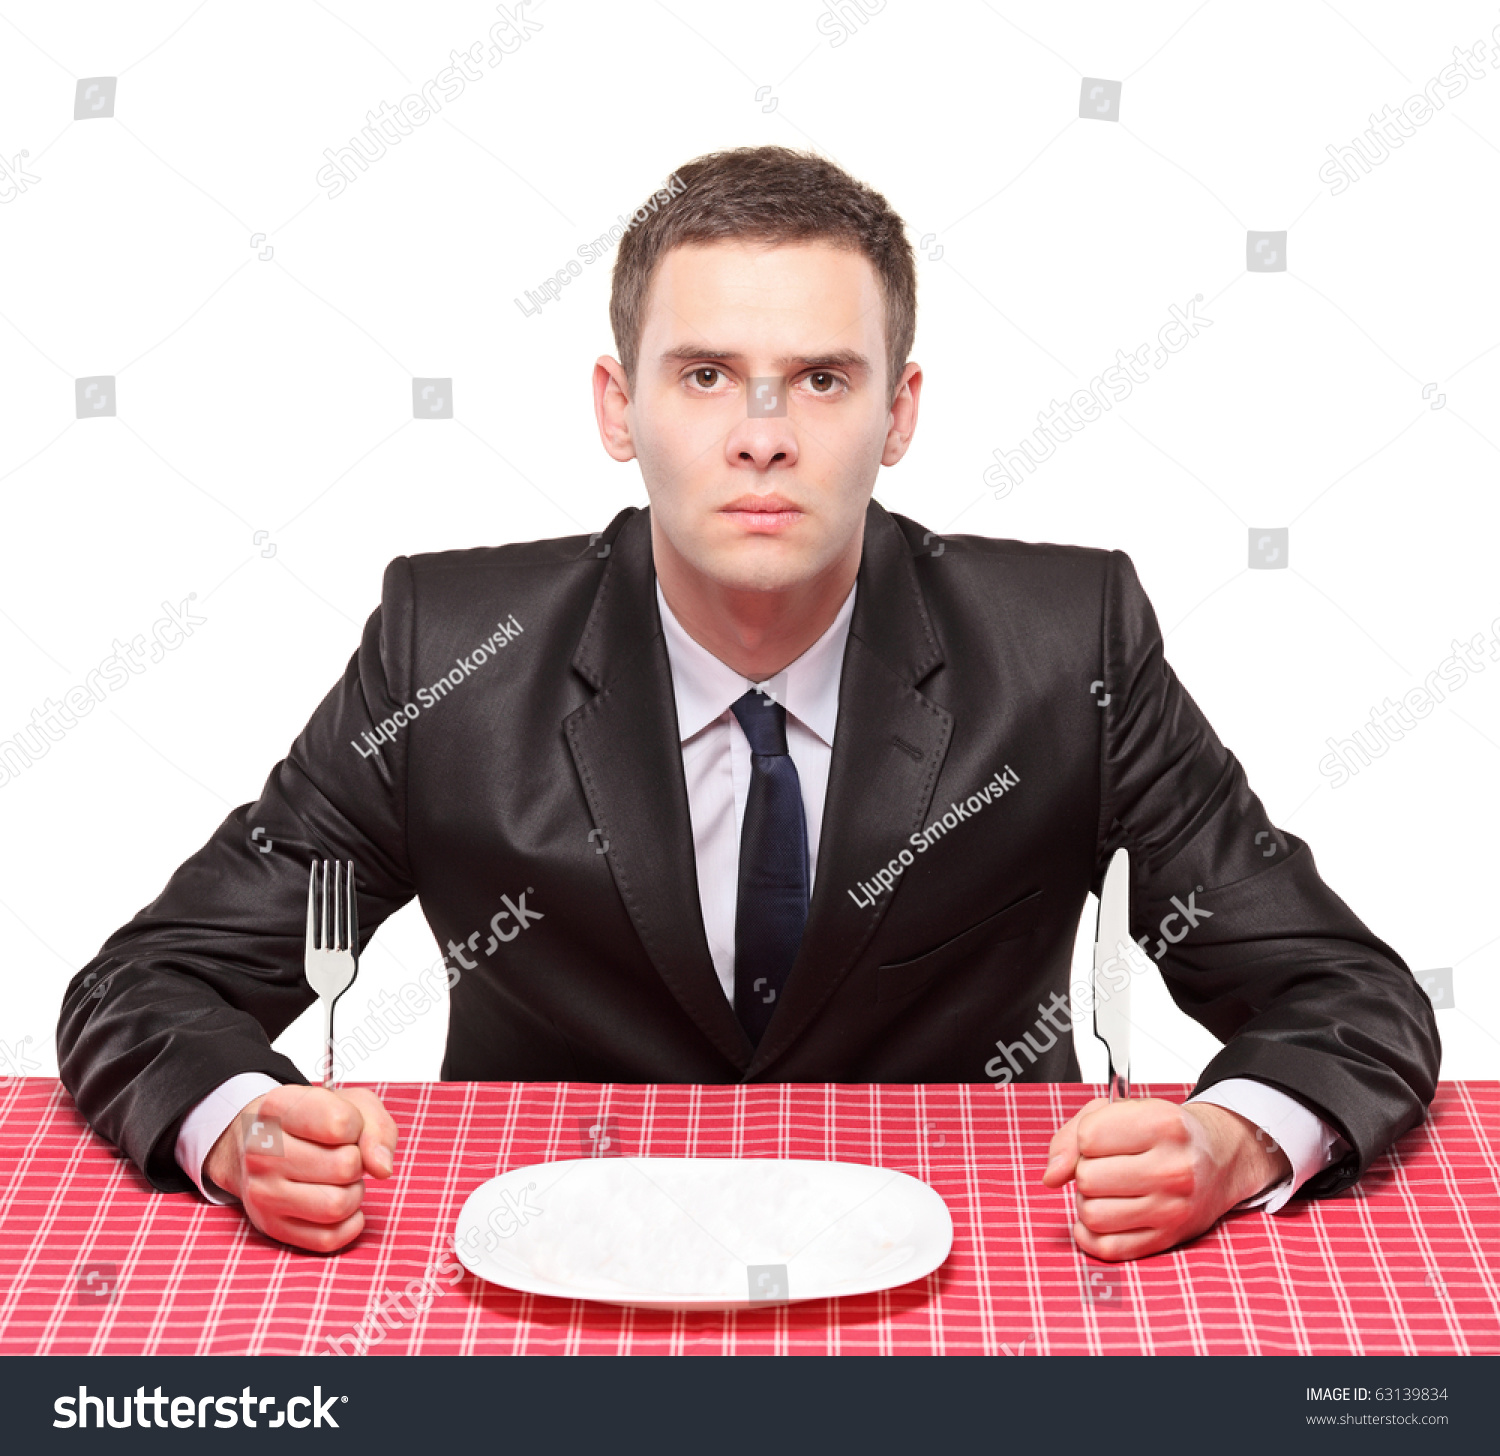 Waiting Tables For Dummies Stock Photo A Businessman Waiting His Meal